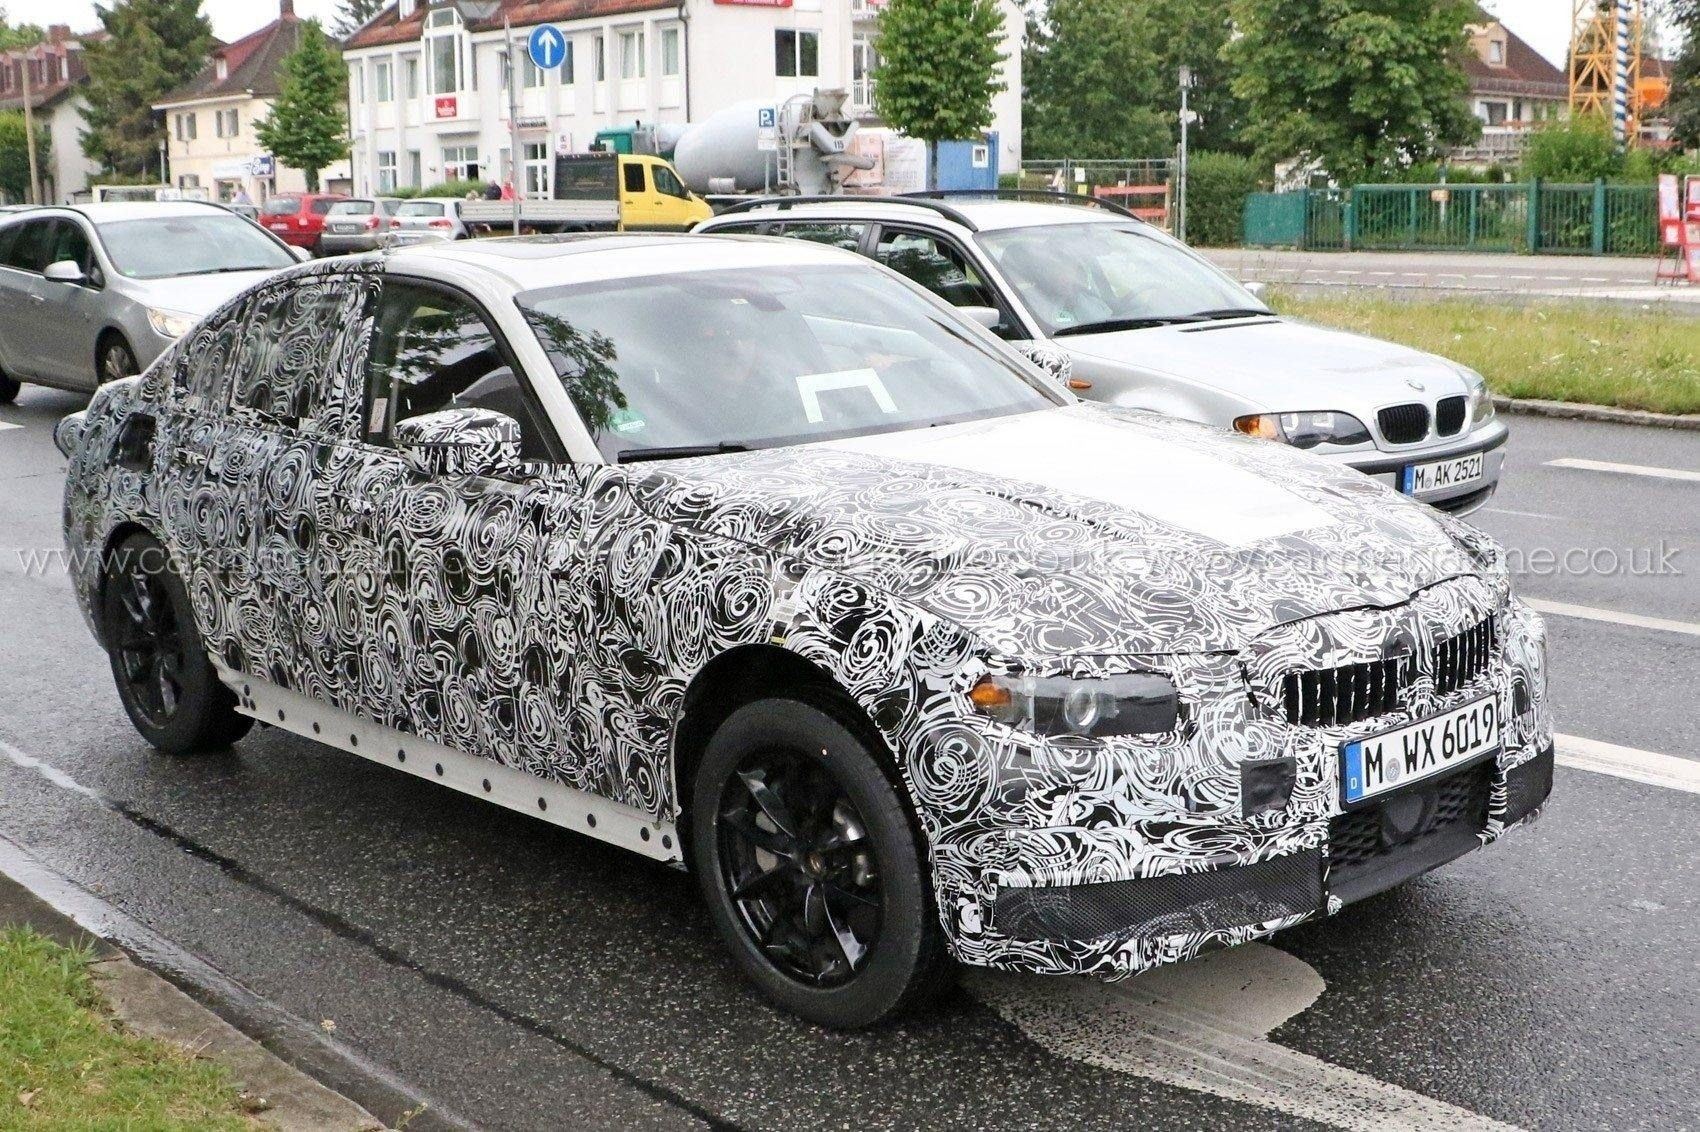 99 The 2020 BMW 3 Series Edrive Phev Picture